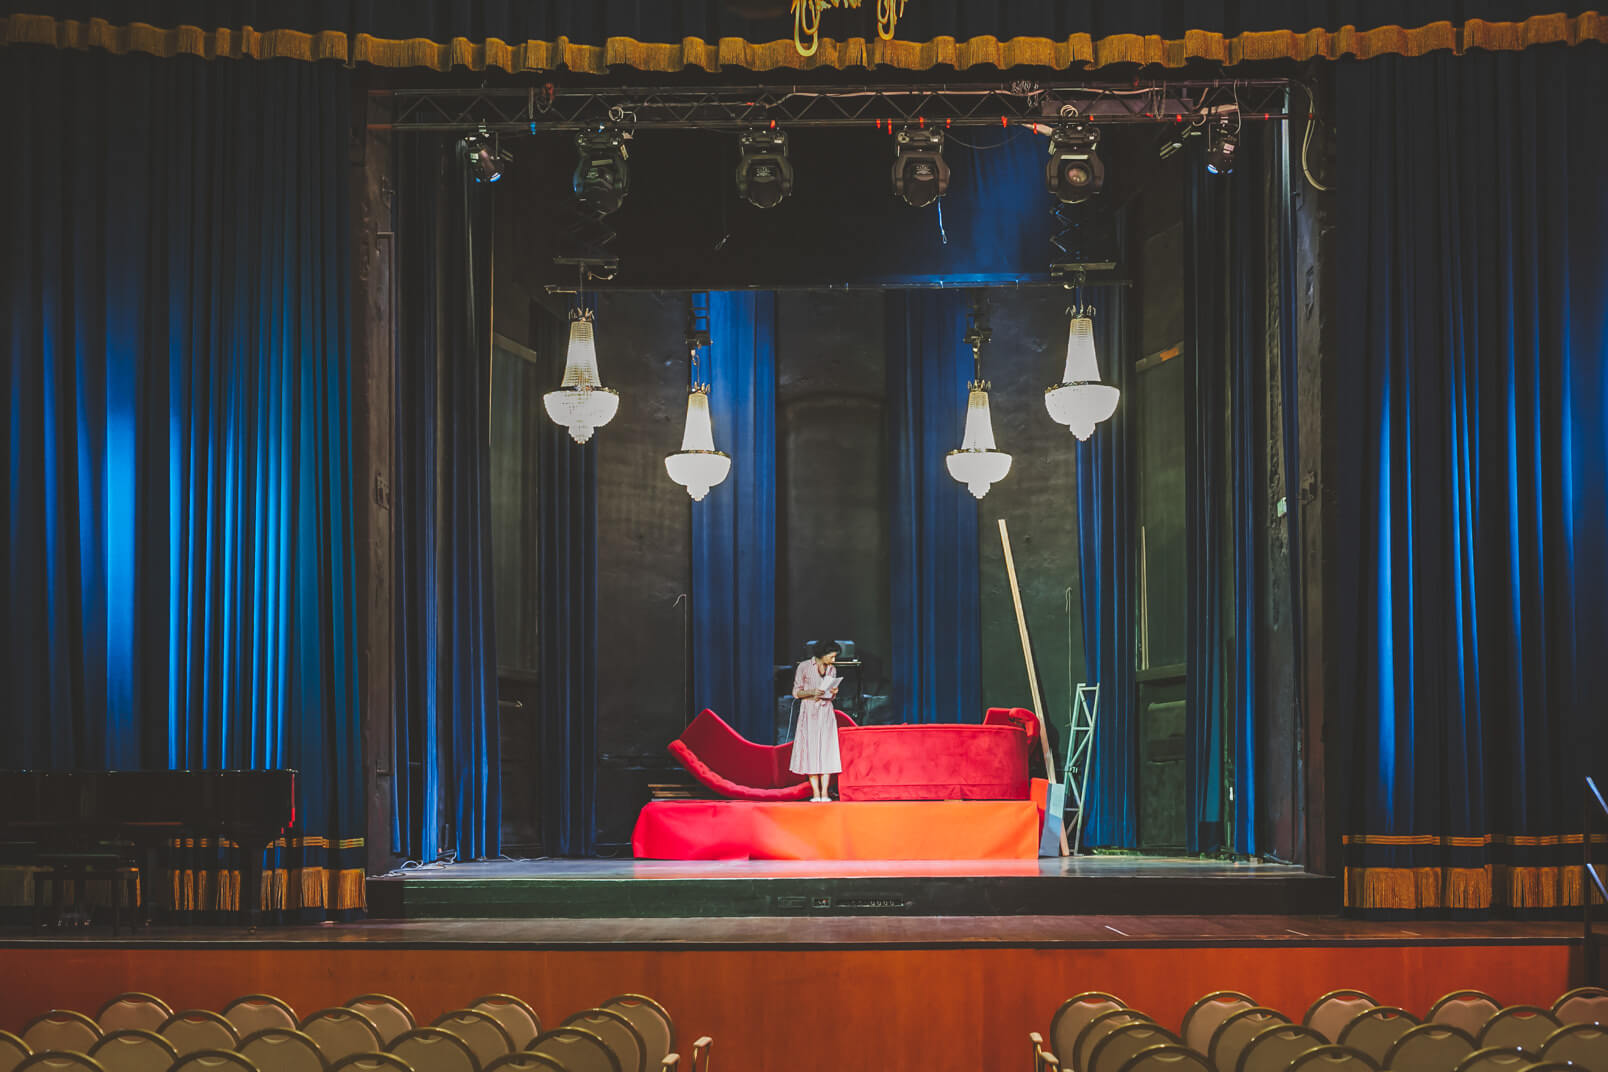 Caterina Lostia inside the Teatro Alberti during the survey for this 60s mood wedding.